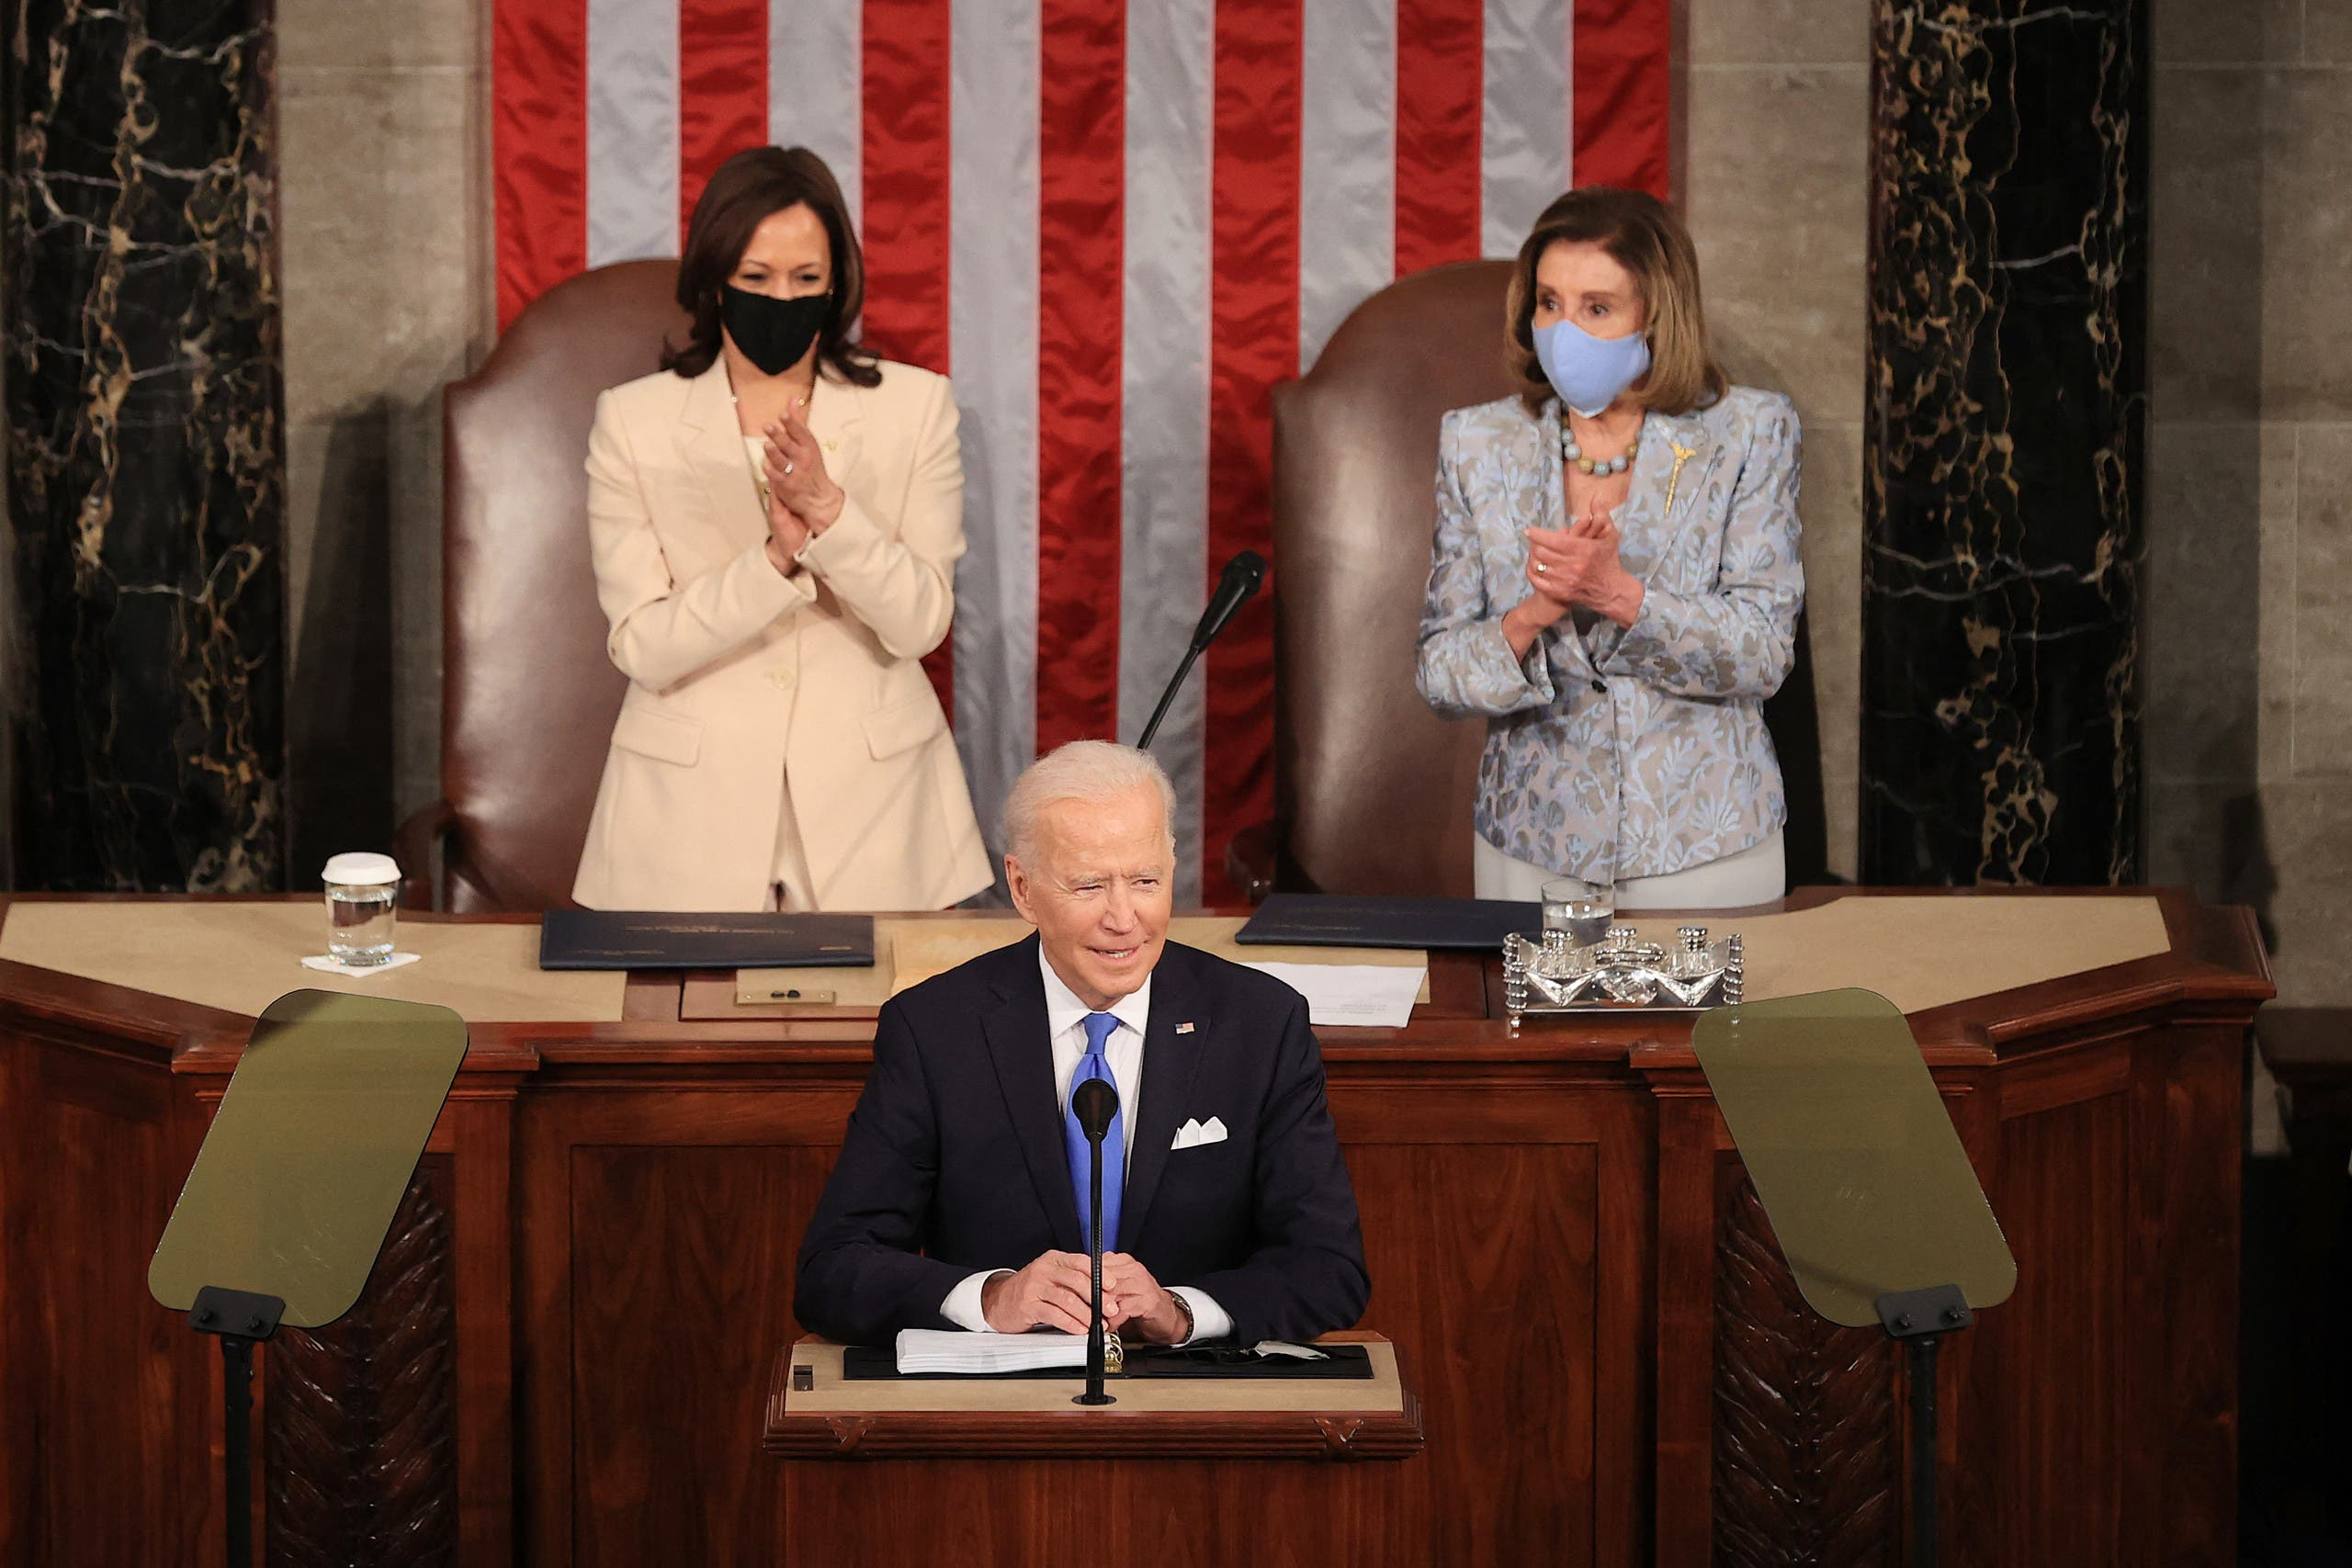 US President Joe Biden, flanked by Vice President Kamala Harris (L) and Speaker of the House Nancy Pelosi, addresses a joint session of Congress at the US Capitol in Washington, DC, on April 28, 2021. (AFP)